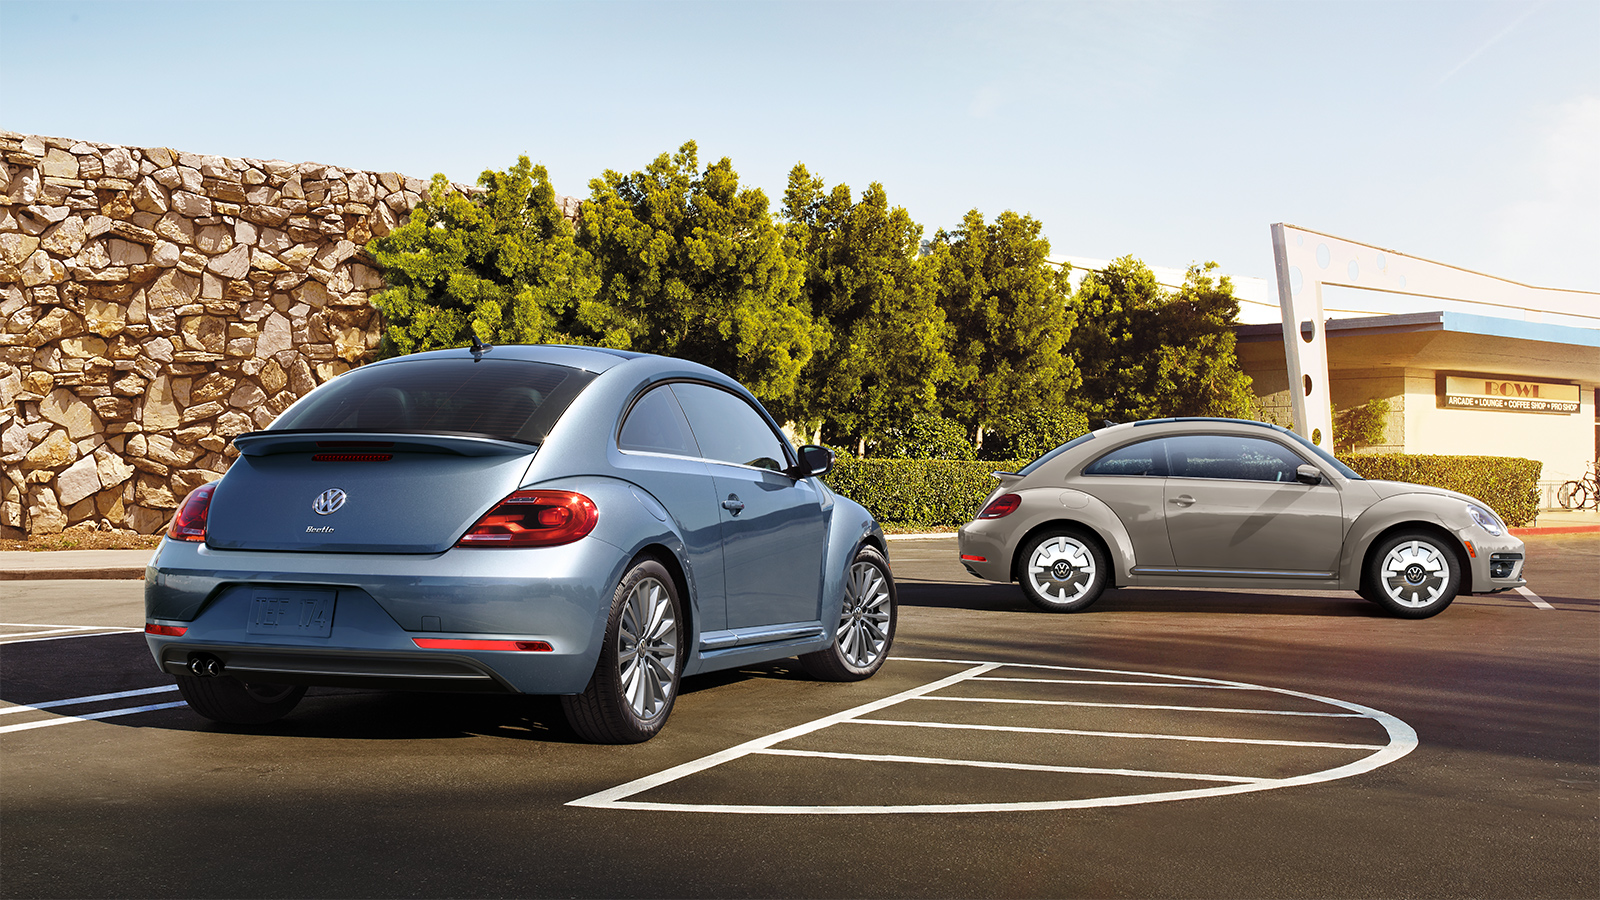 Production Of The Volkswagen Beetle Officially Comes To An End Techcrunch